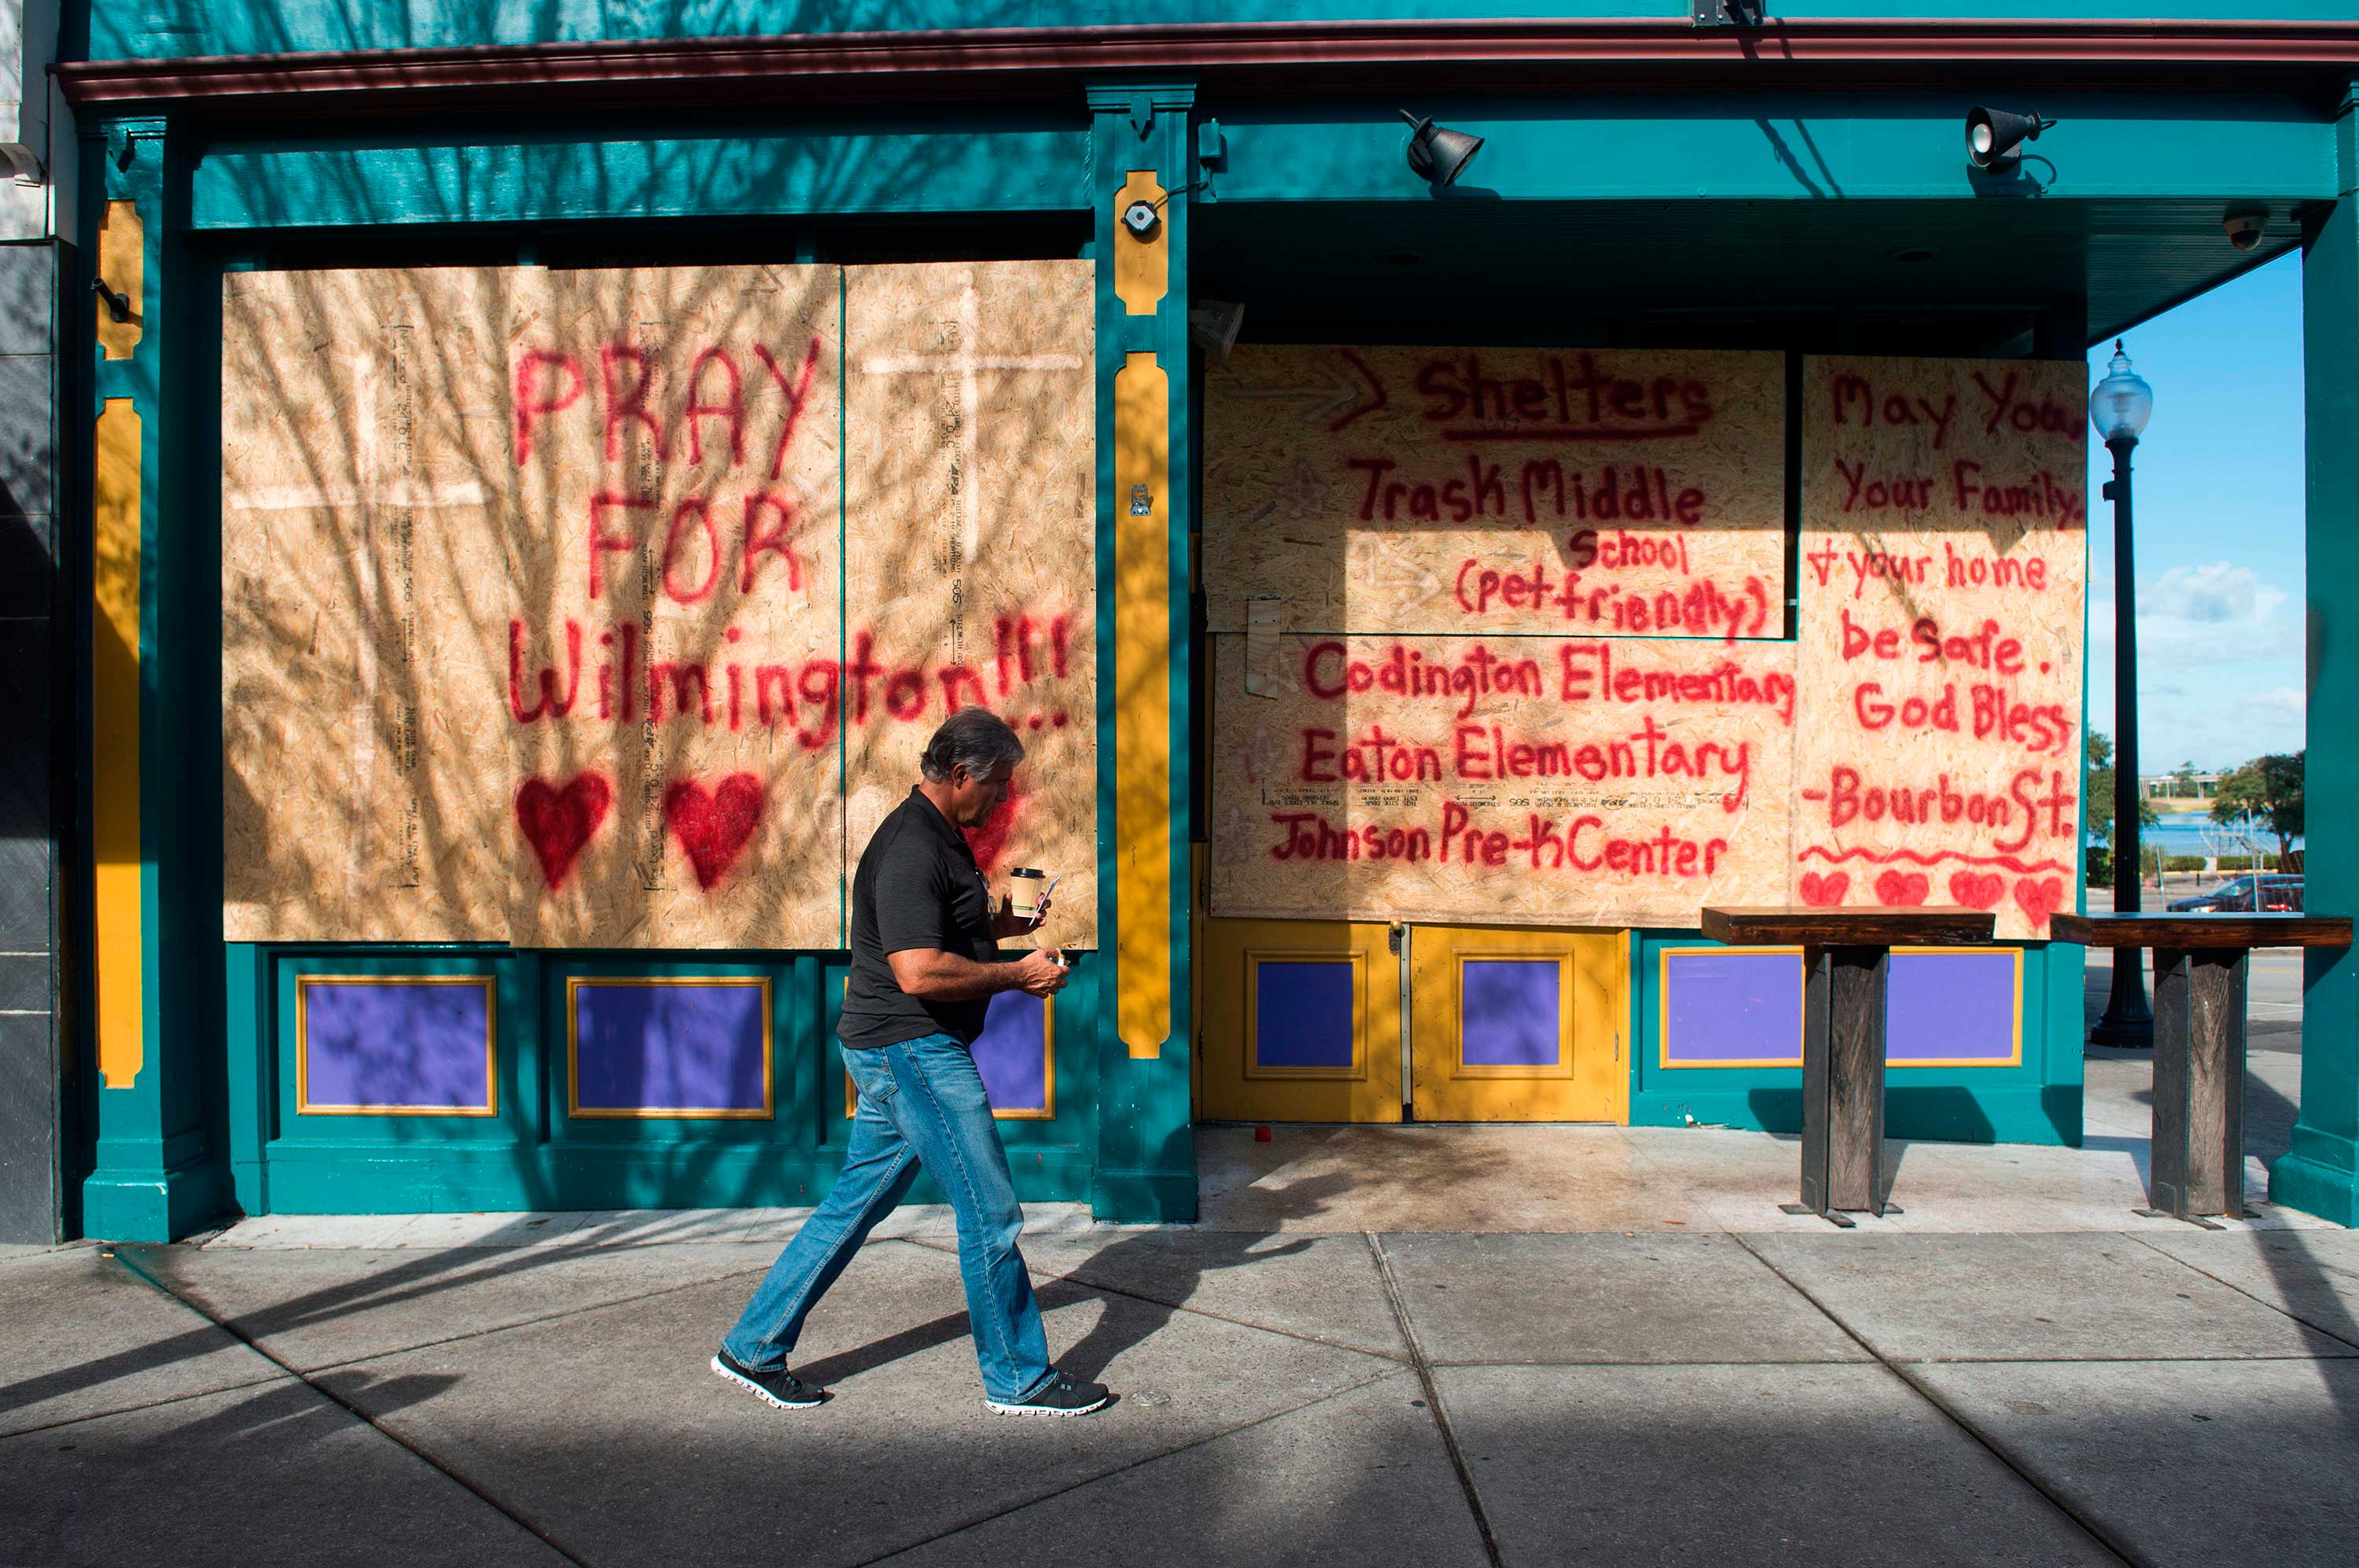 <div class='meta'><div class='origin-logo' data-origin='none'></div><span class='caption-text' data-credit='ANDREW CABALLERO-REYNOLDS/AFP/Getty Images'>A man walks past a boarded up shop in Wilmington, North Carolina on September 12, 2018.</span></div>